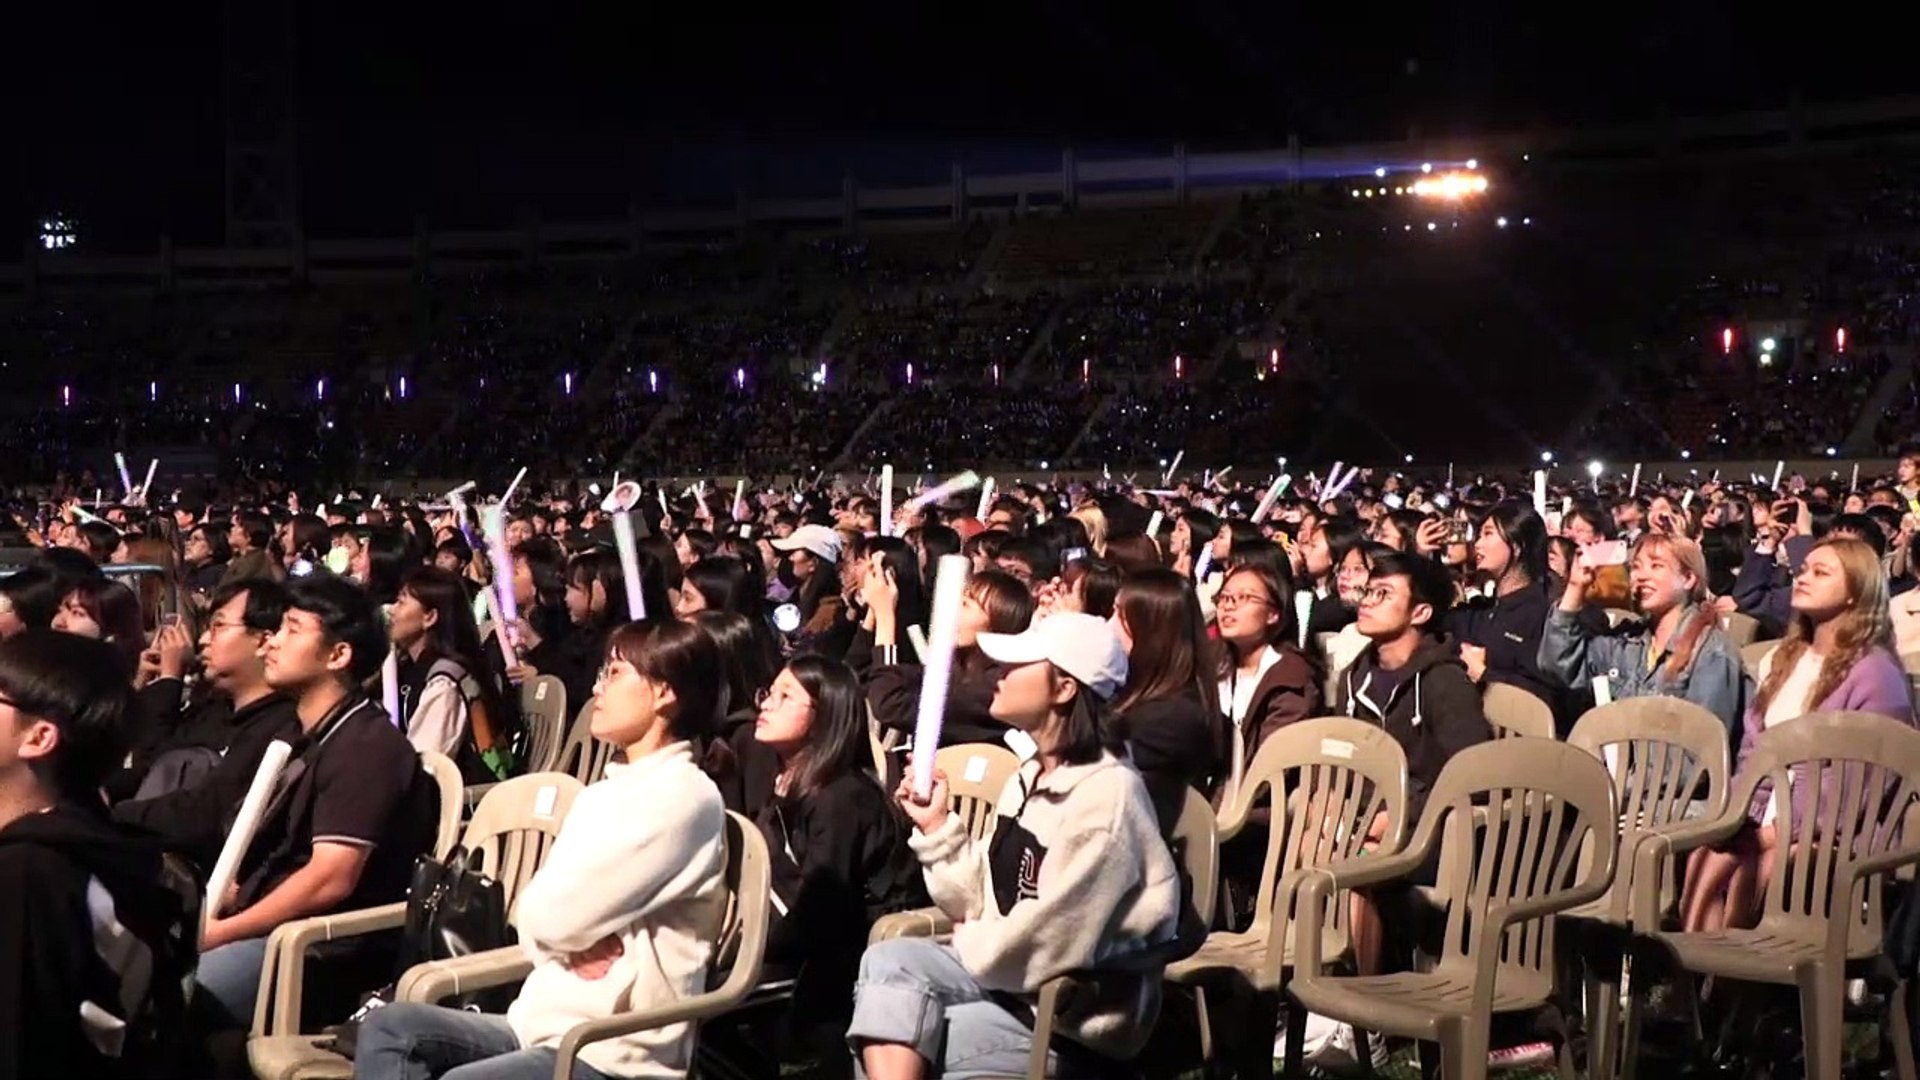 Performers gather for K-pop festival in South Korea